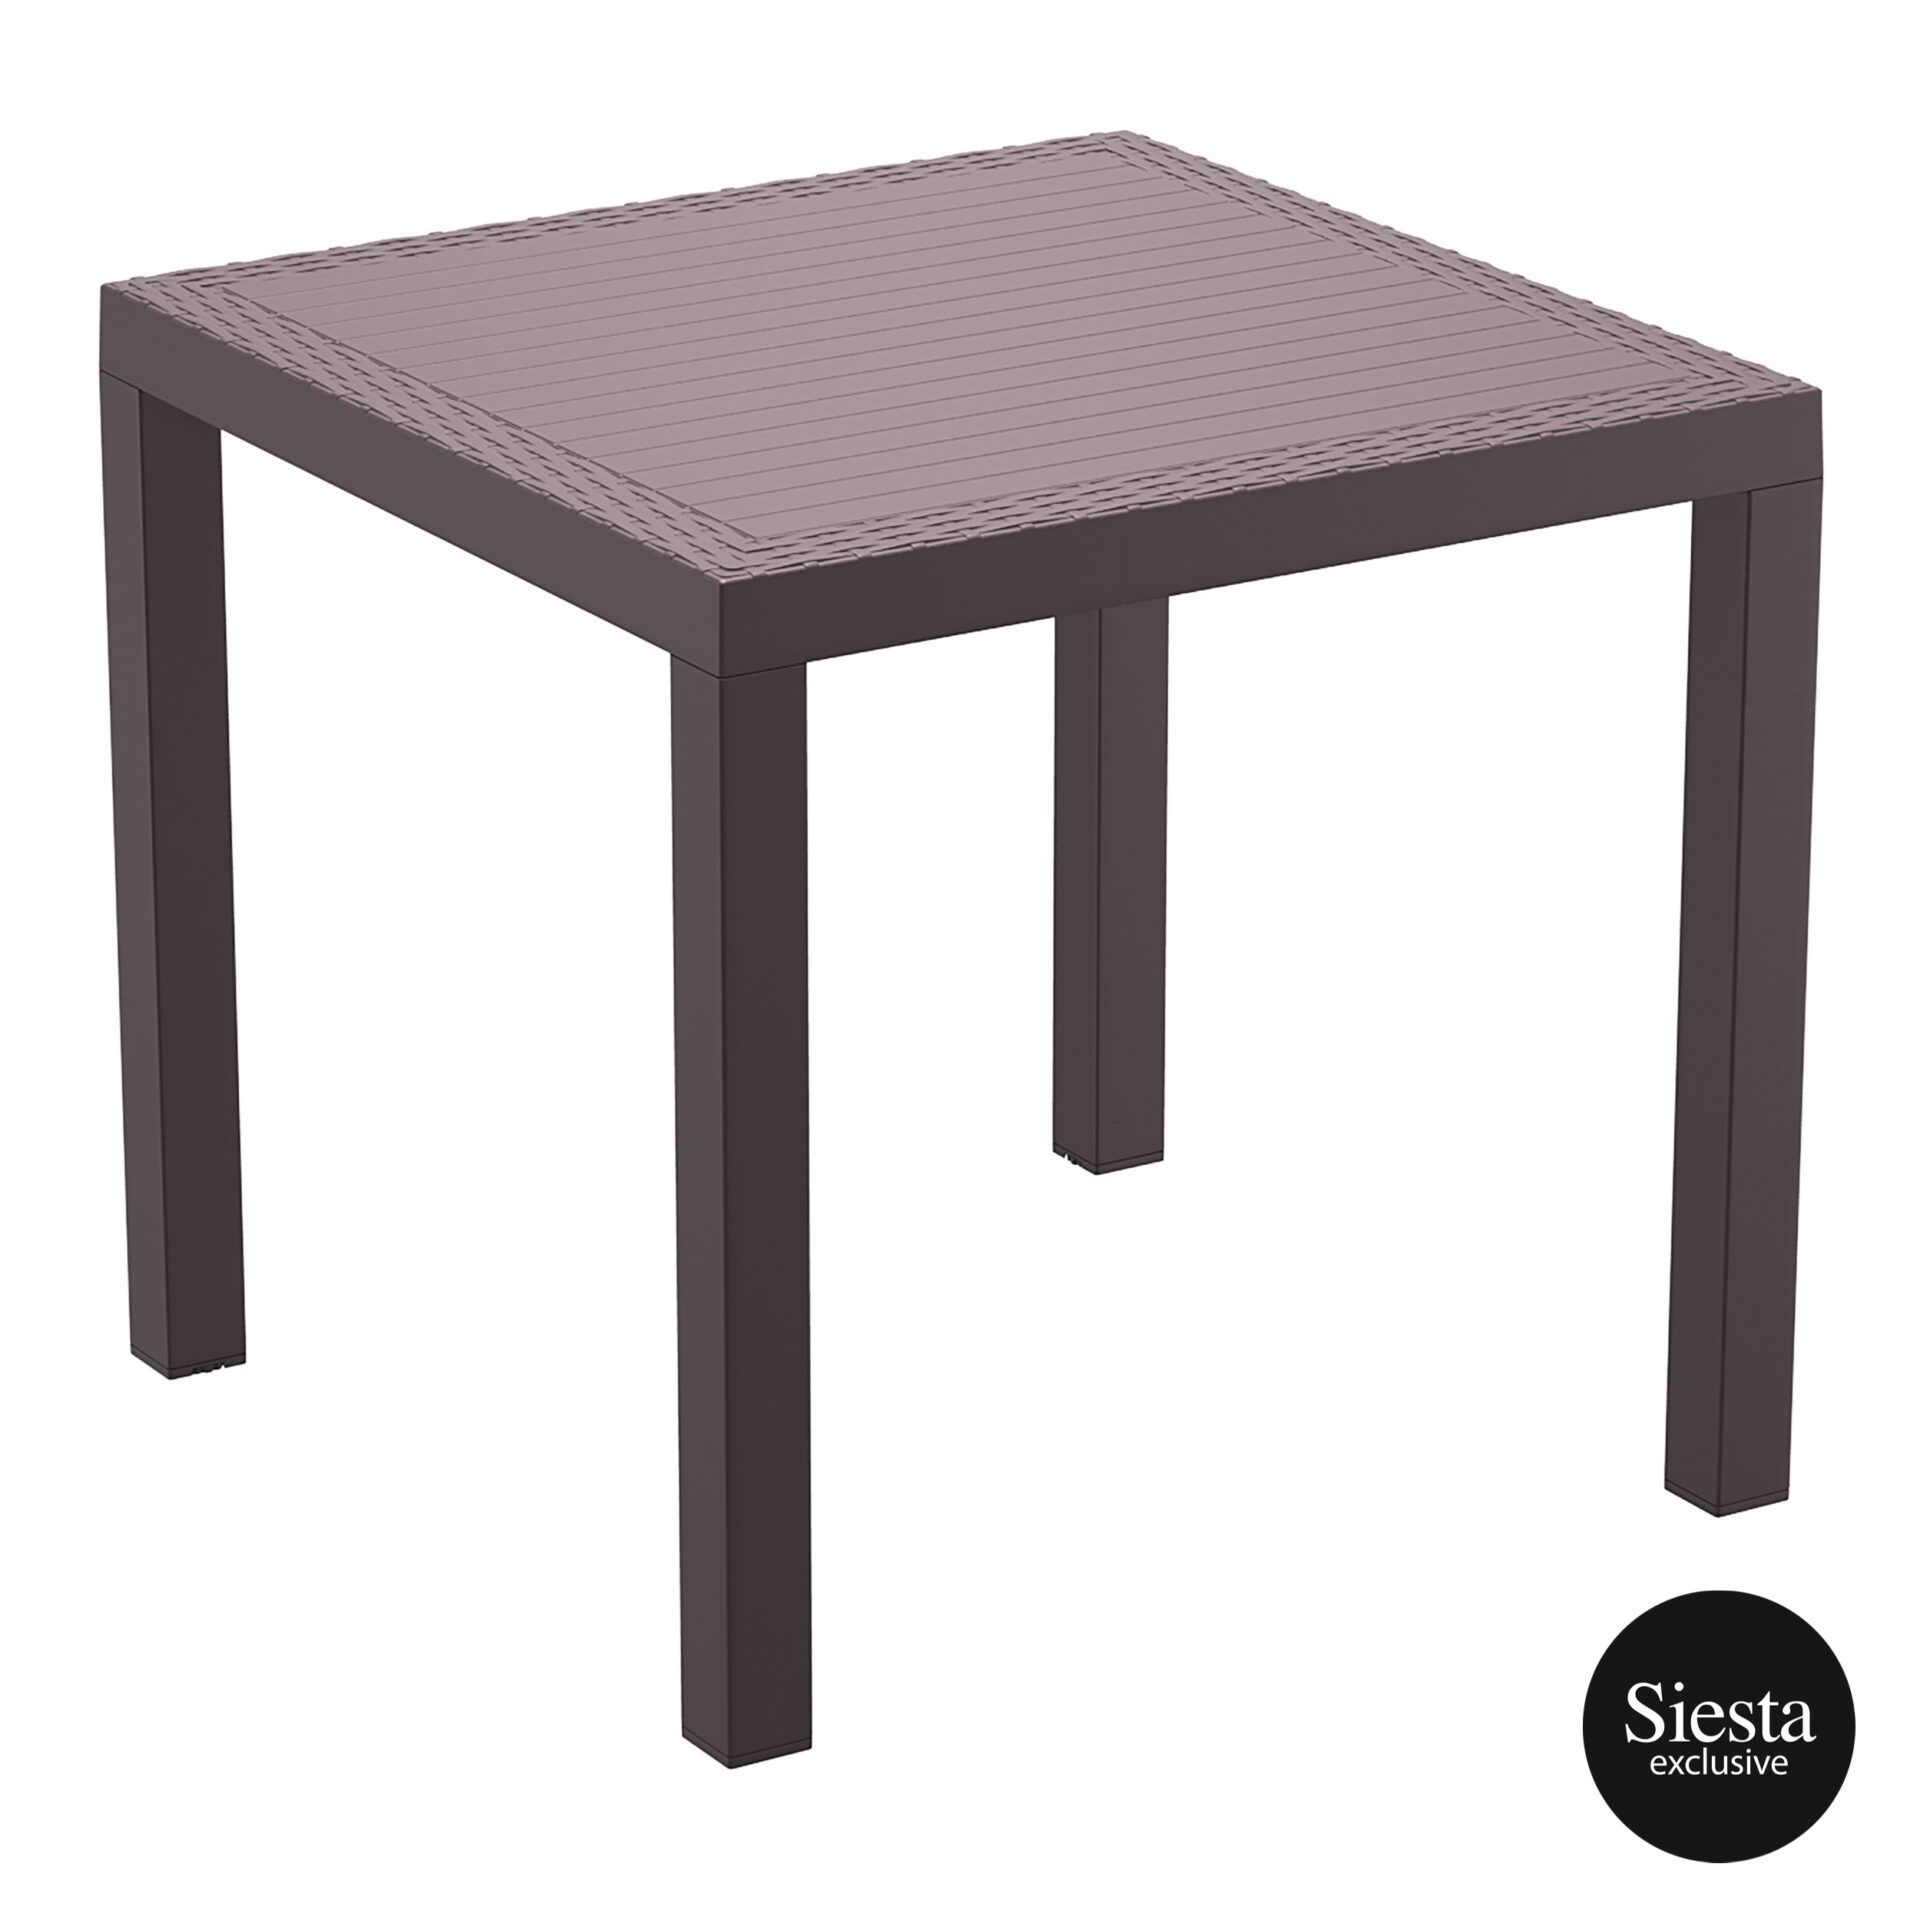 outdoor resin rattan cafe plastic top bali table 80 brown front side